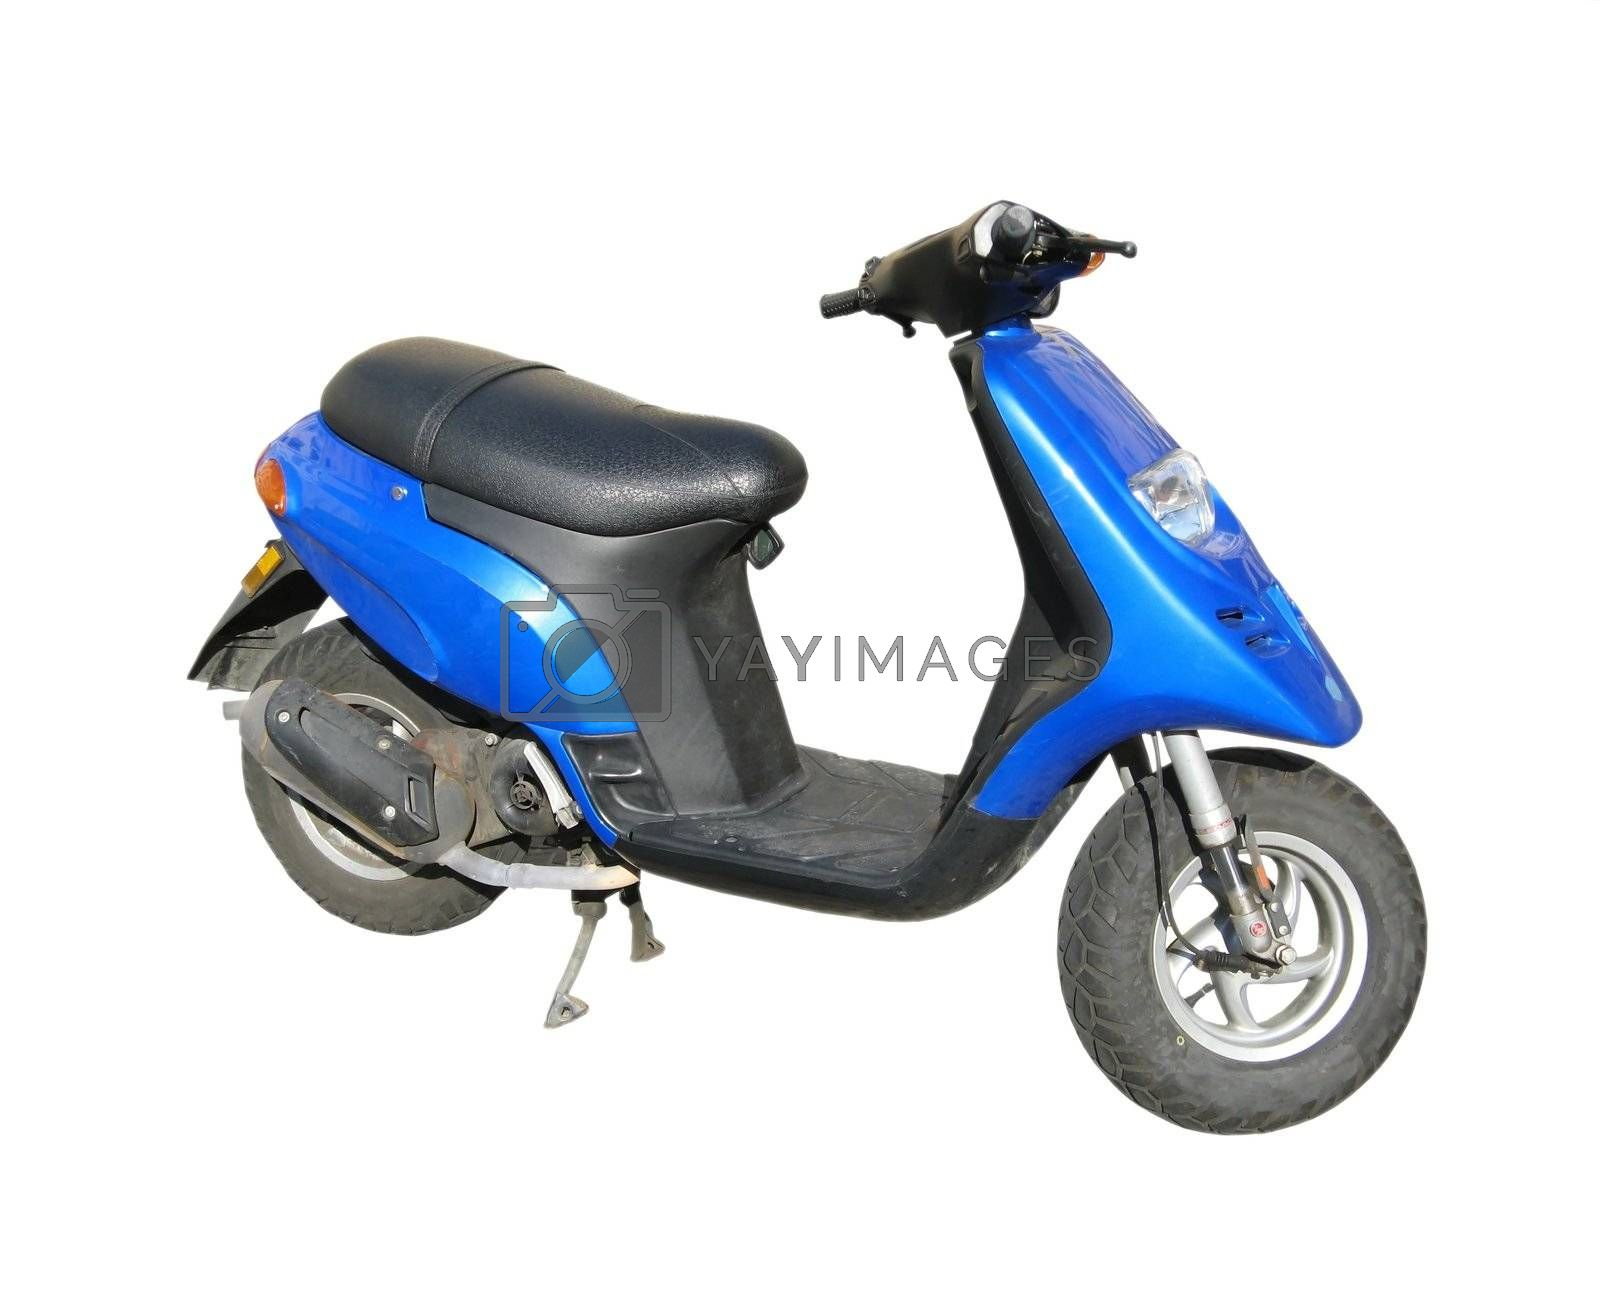 an image showing a blue isolated scooter